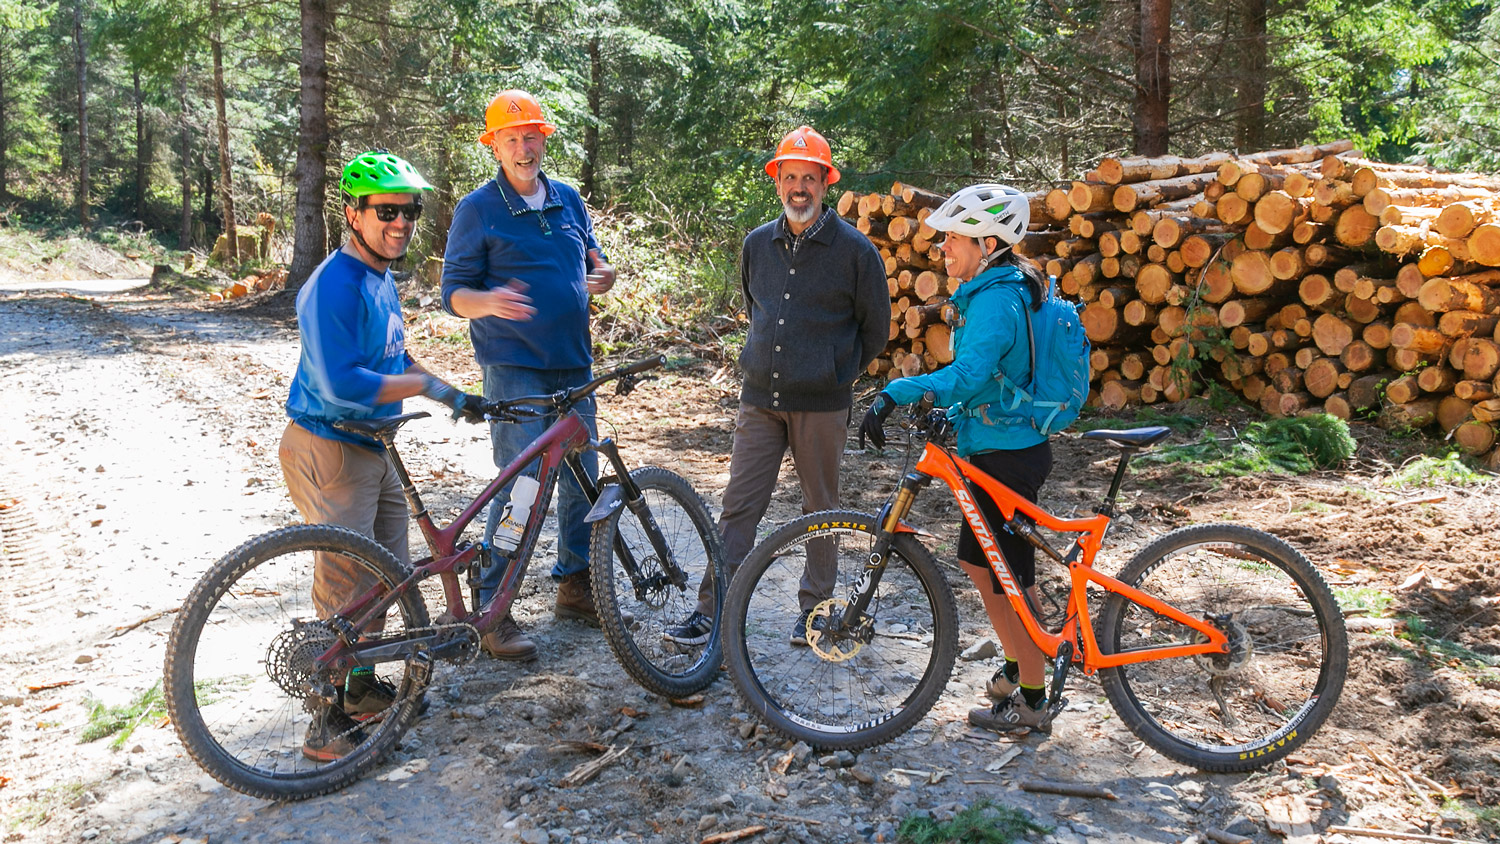 Stakeholders at Galbraith Tree Farm - From left to right; Eric Brown, Whatcom Mountain Bike Coalition – Rich Bowers, Whatcom Land Trust – Rob Janicki, Janicki Logging and Construction – Linda Balfour, The Conservation Alliance.